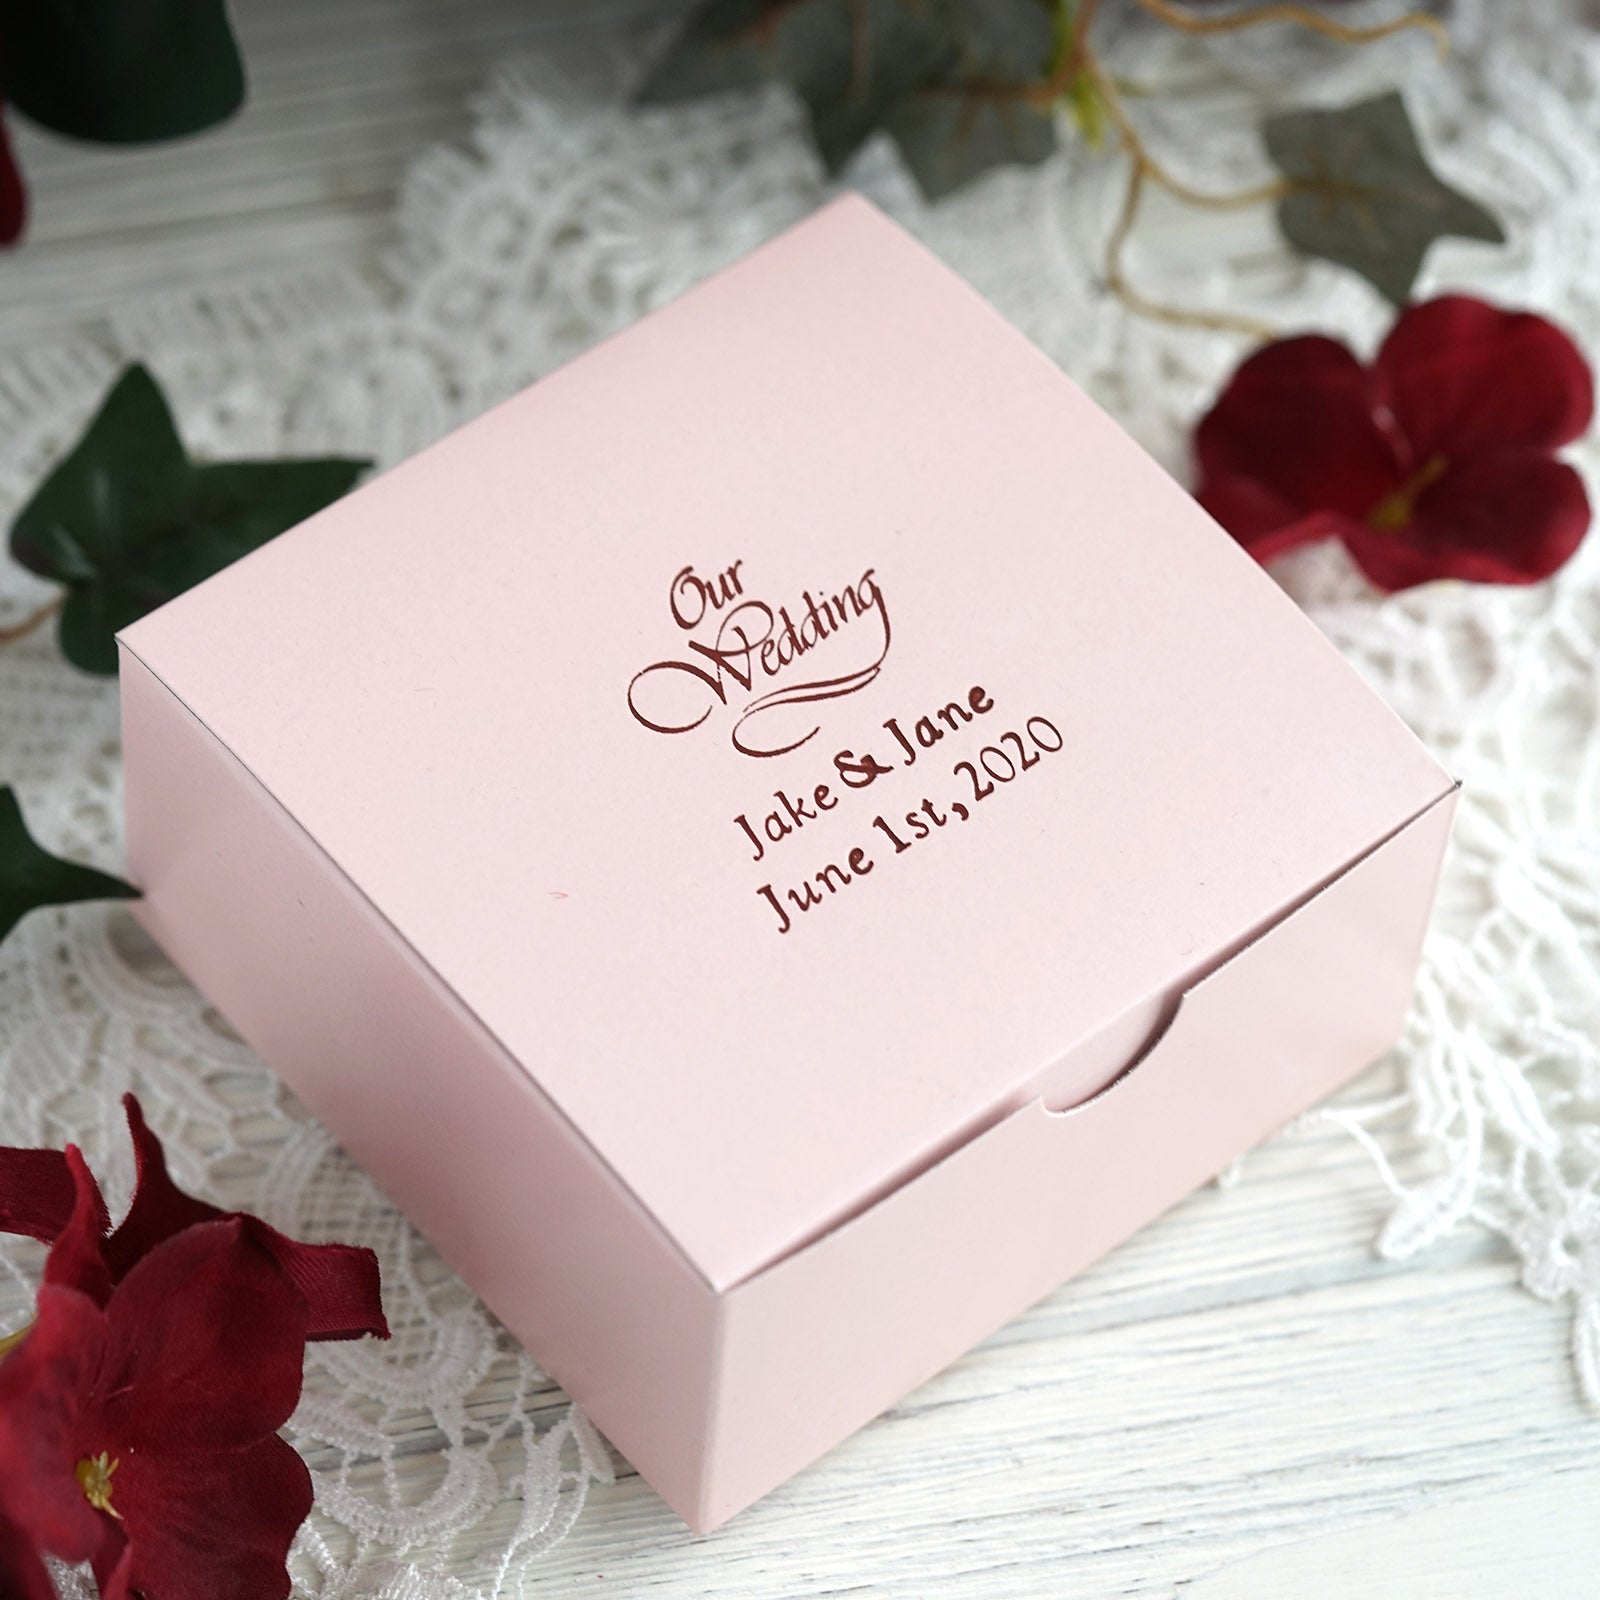 Red Foil Printing on a Pink Box